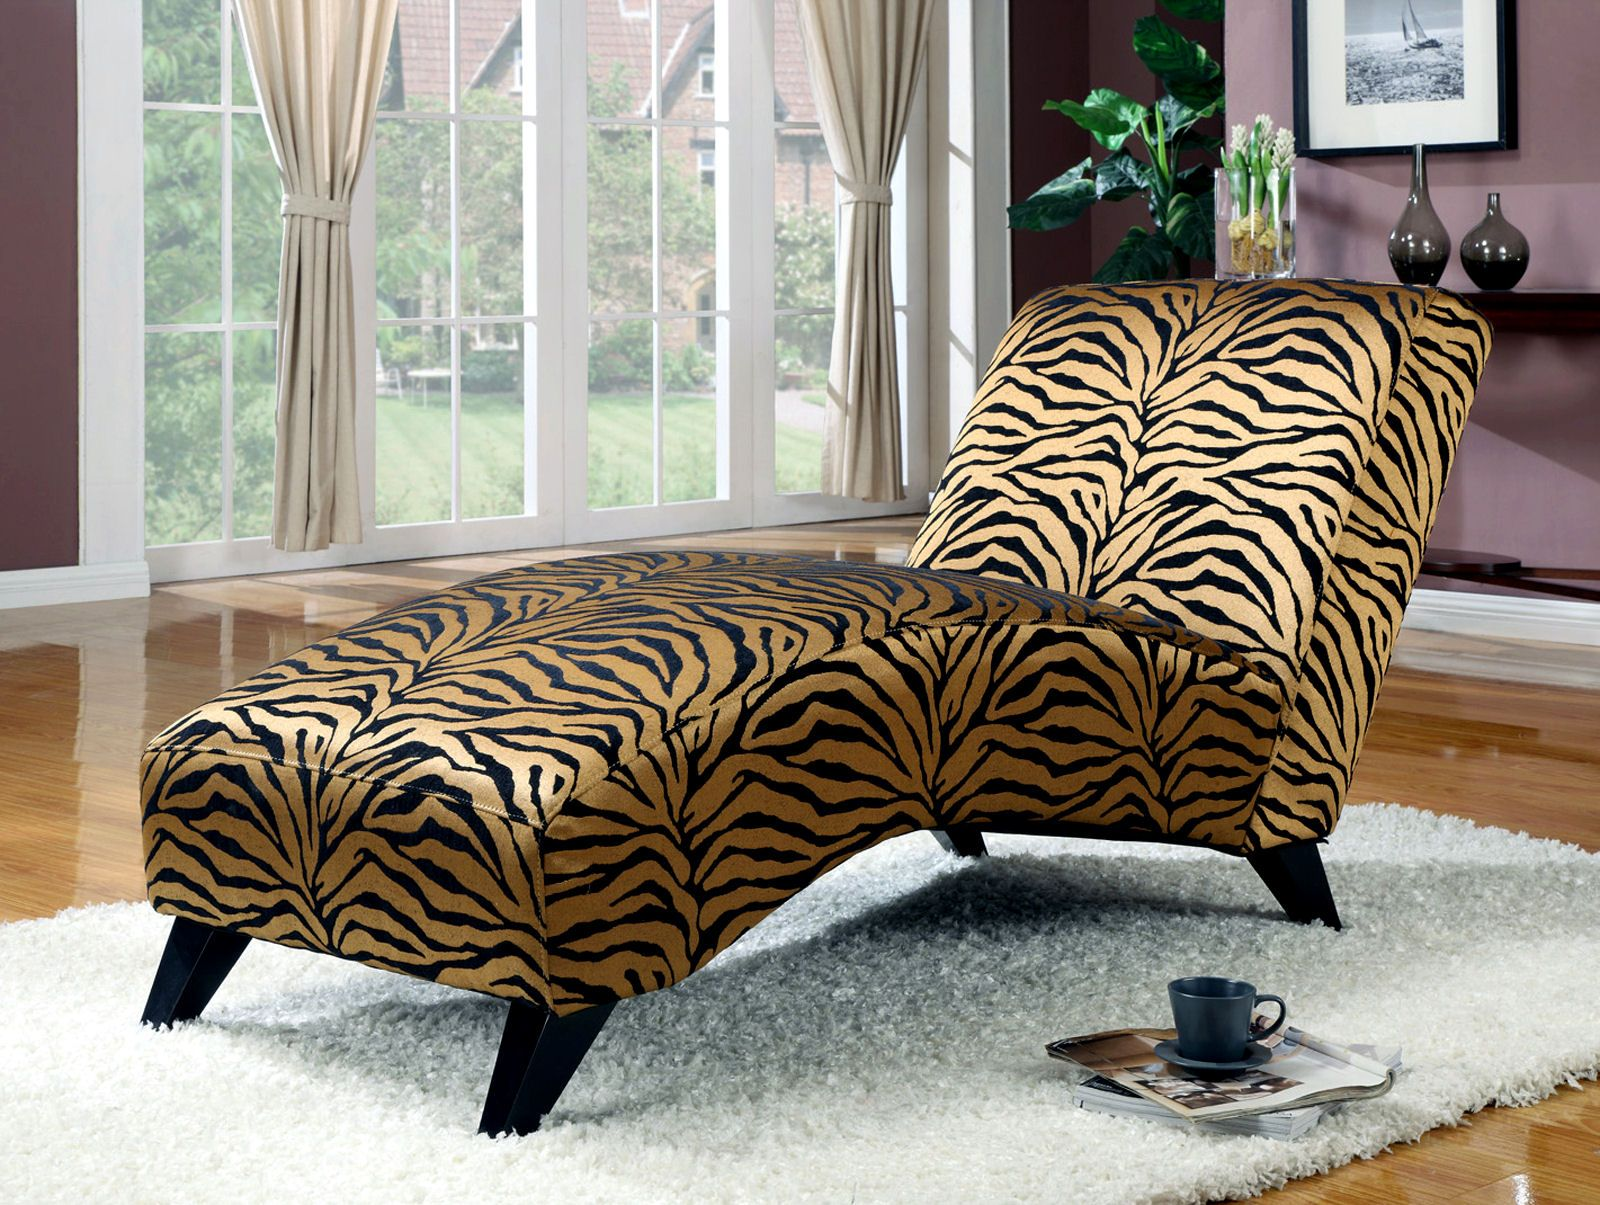 lounge you amusing also leopard of love print ll zebra on chaise chairs animal chair pleasing